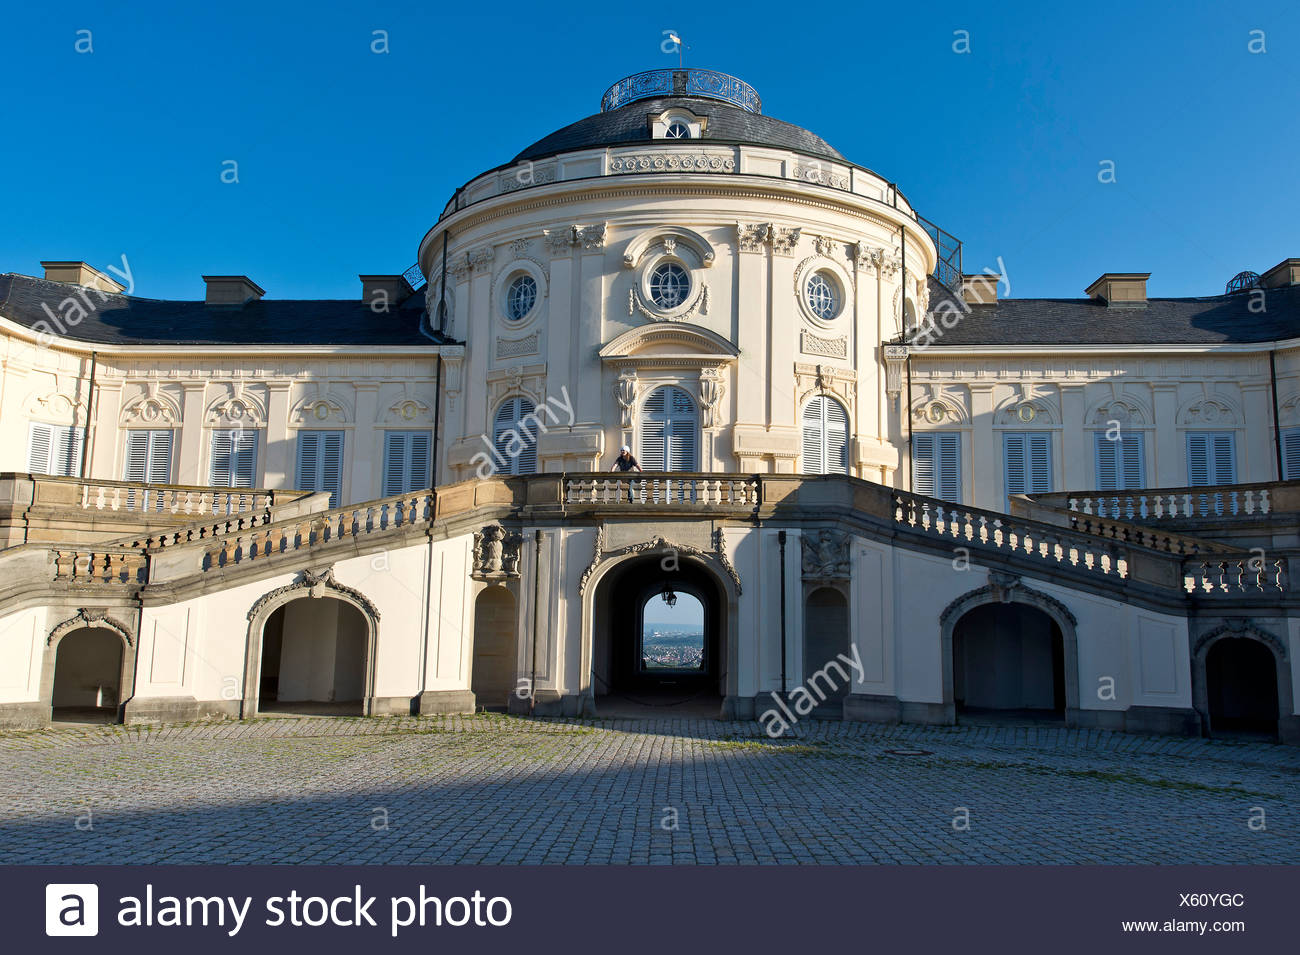 Rococo palace, Schloss Solitude, hunting and pleasure palace, built by Duke  Carl Eugen von Wuerttemberg, Stuttgart-West